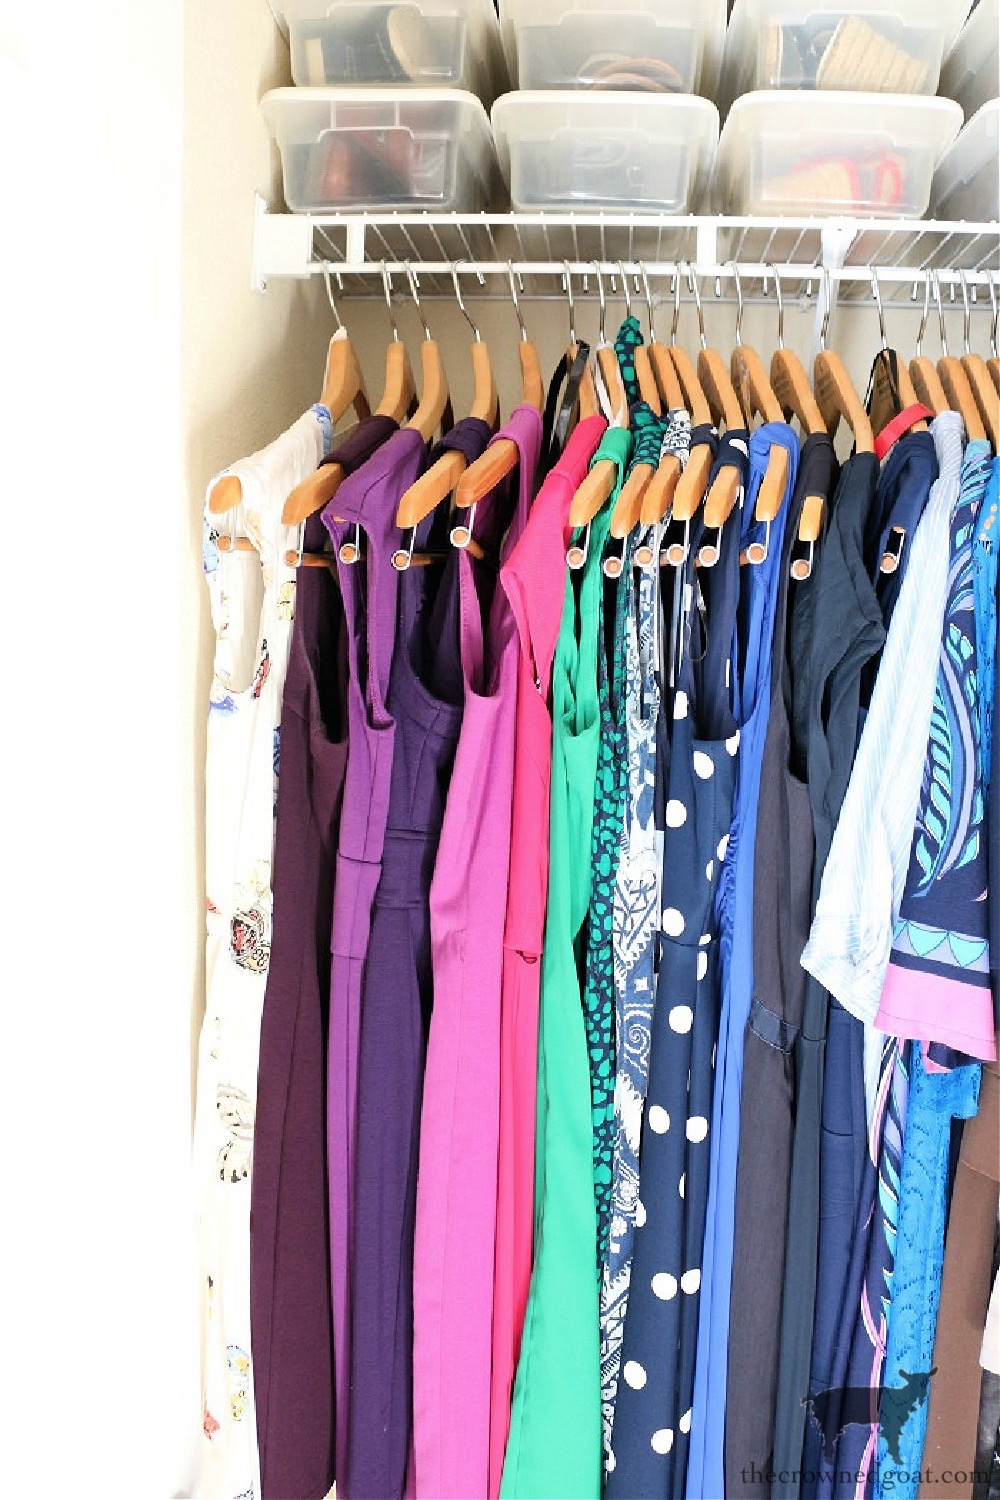 5 Key Spaces to Organize Before School Starts-Your Closet-The Crowned Goat